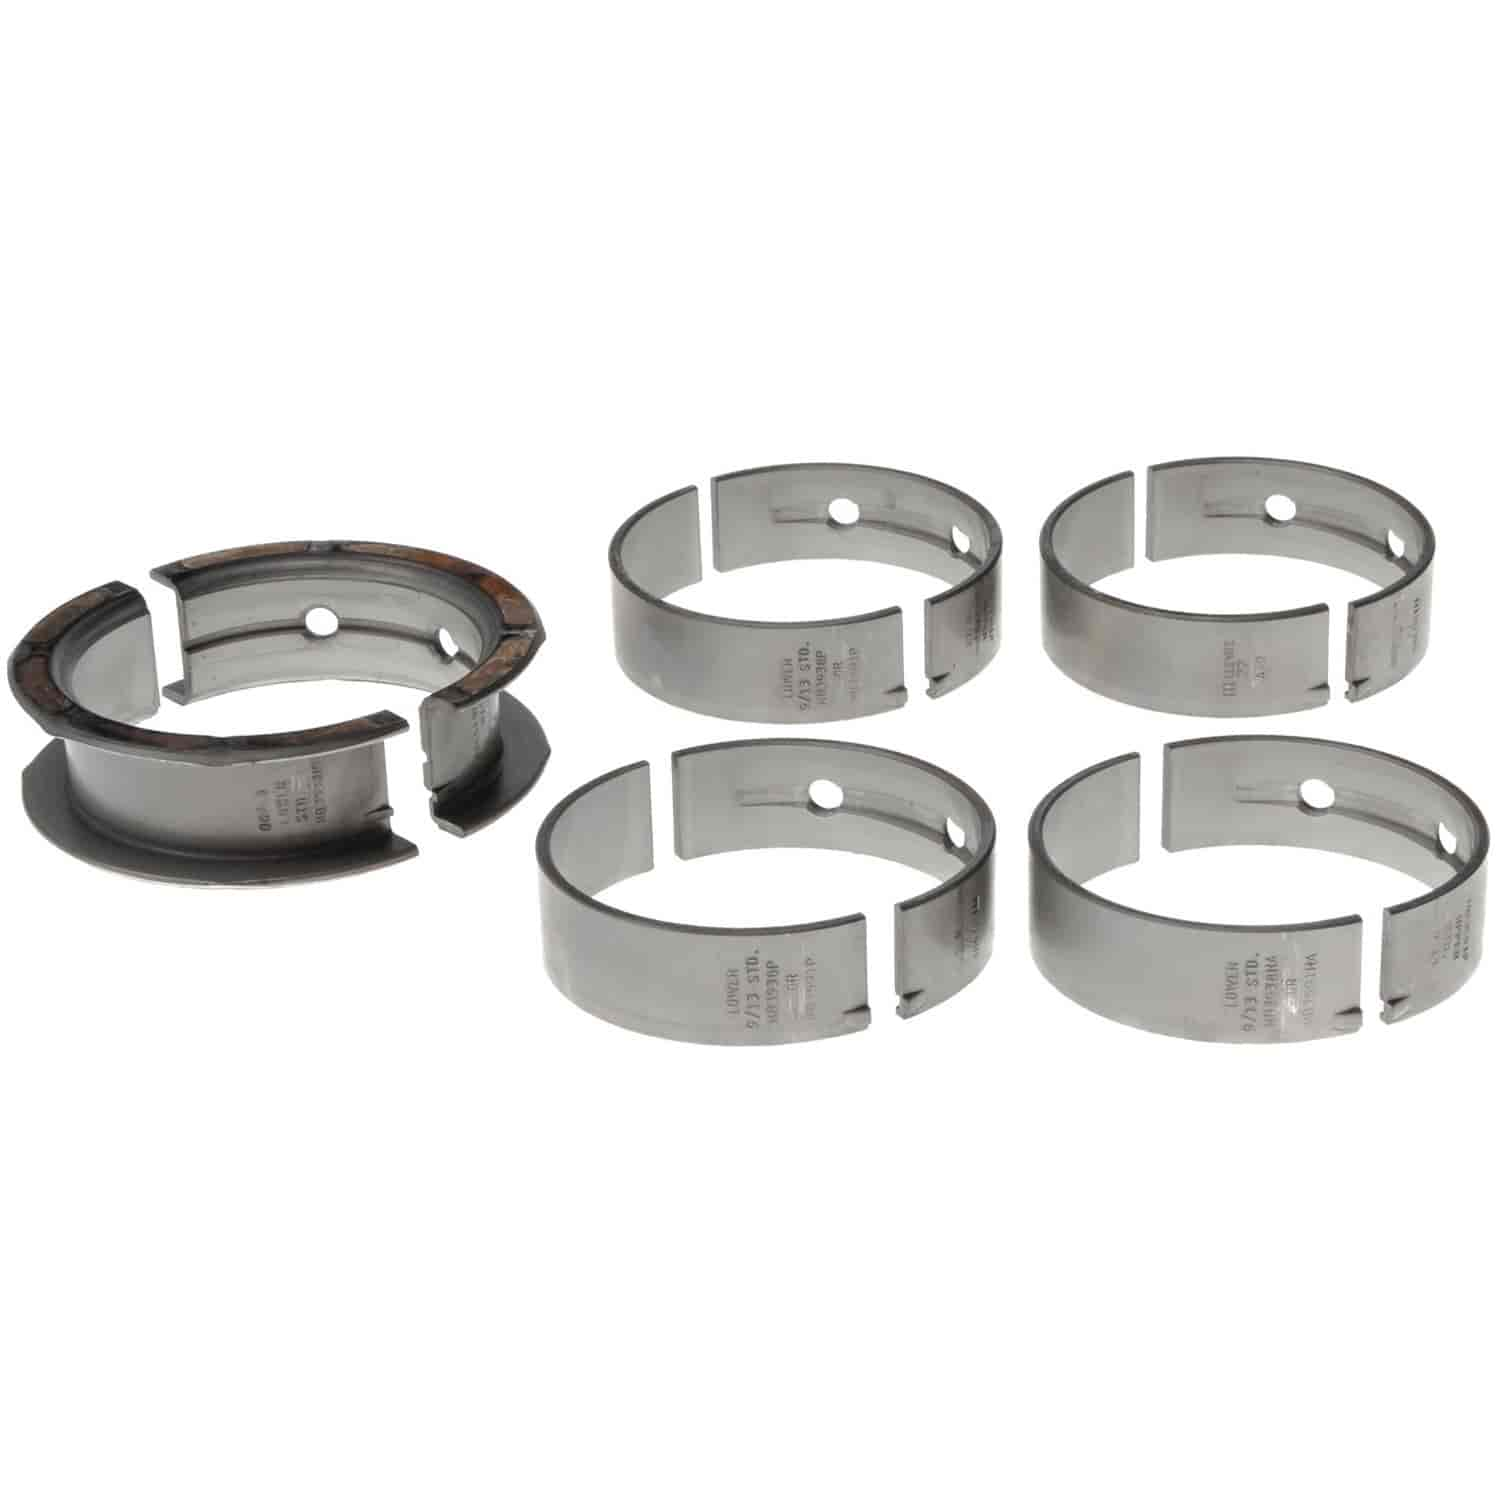 Clevite MS2199P - Clevite 77 High-Performance Bearings